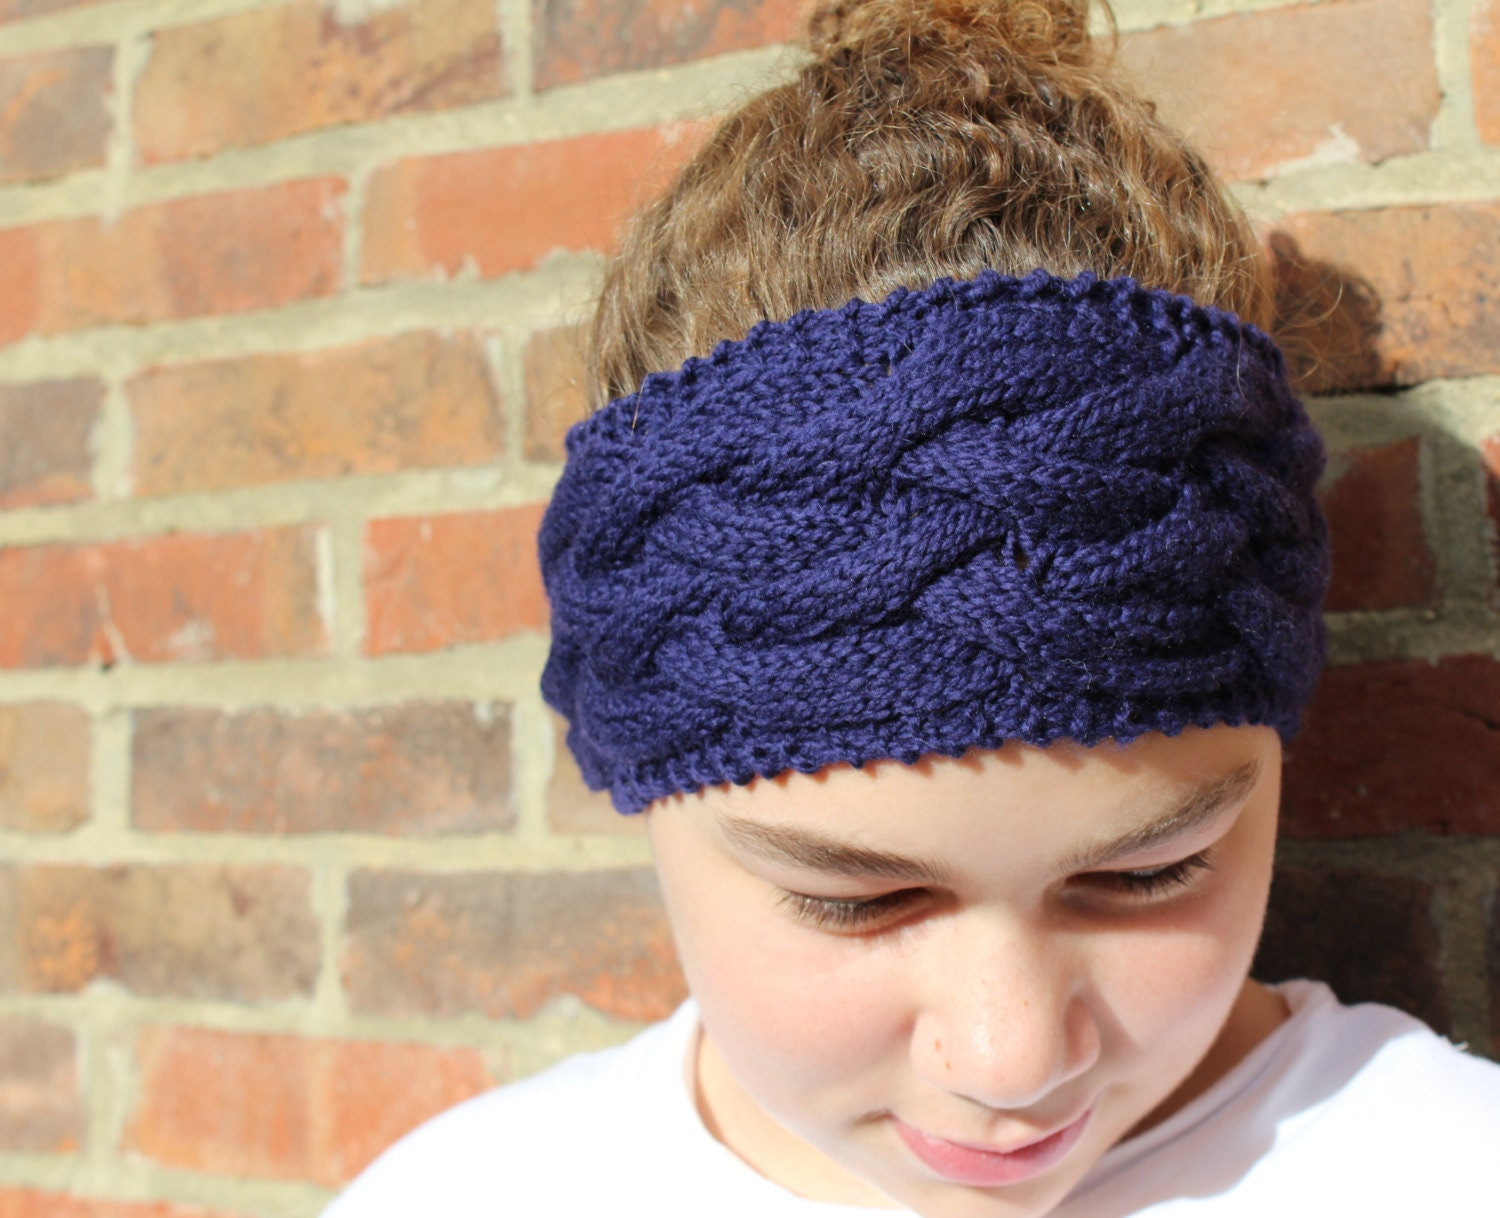 Double Knitting Headband Pattern : KNITTING PATTERN Cable Headband Pattern Double Dutch Three